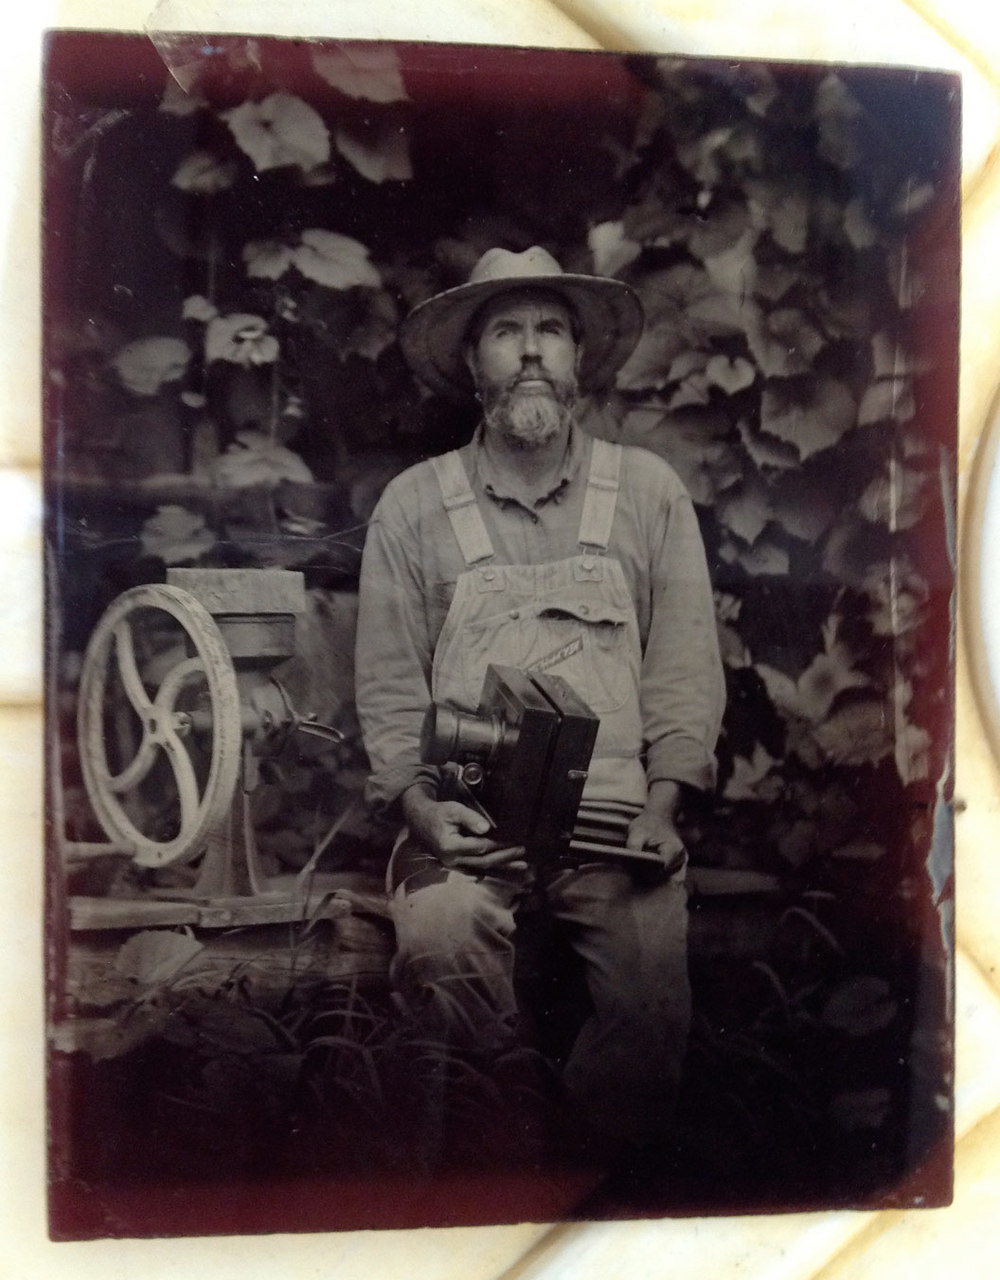 Sadly, this is one of my favorite ambrotypes that I shot of John....and I broke it...I never even scanned it.  I just have this one photograph of it.